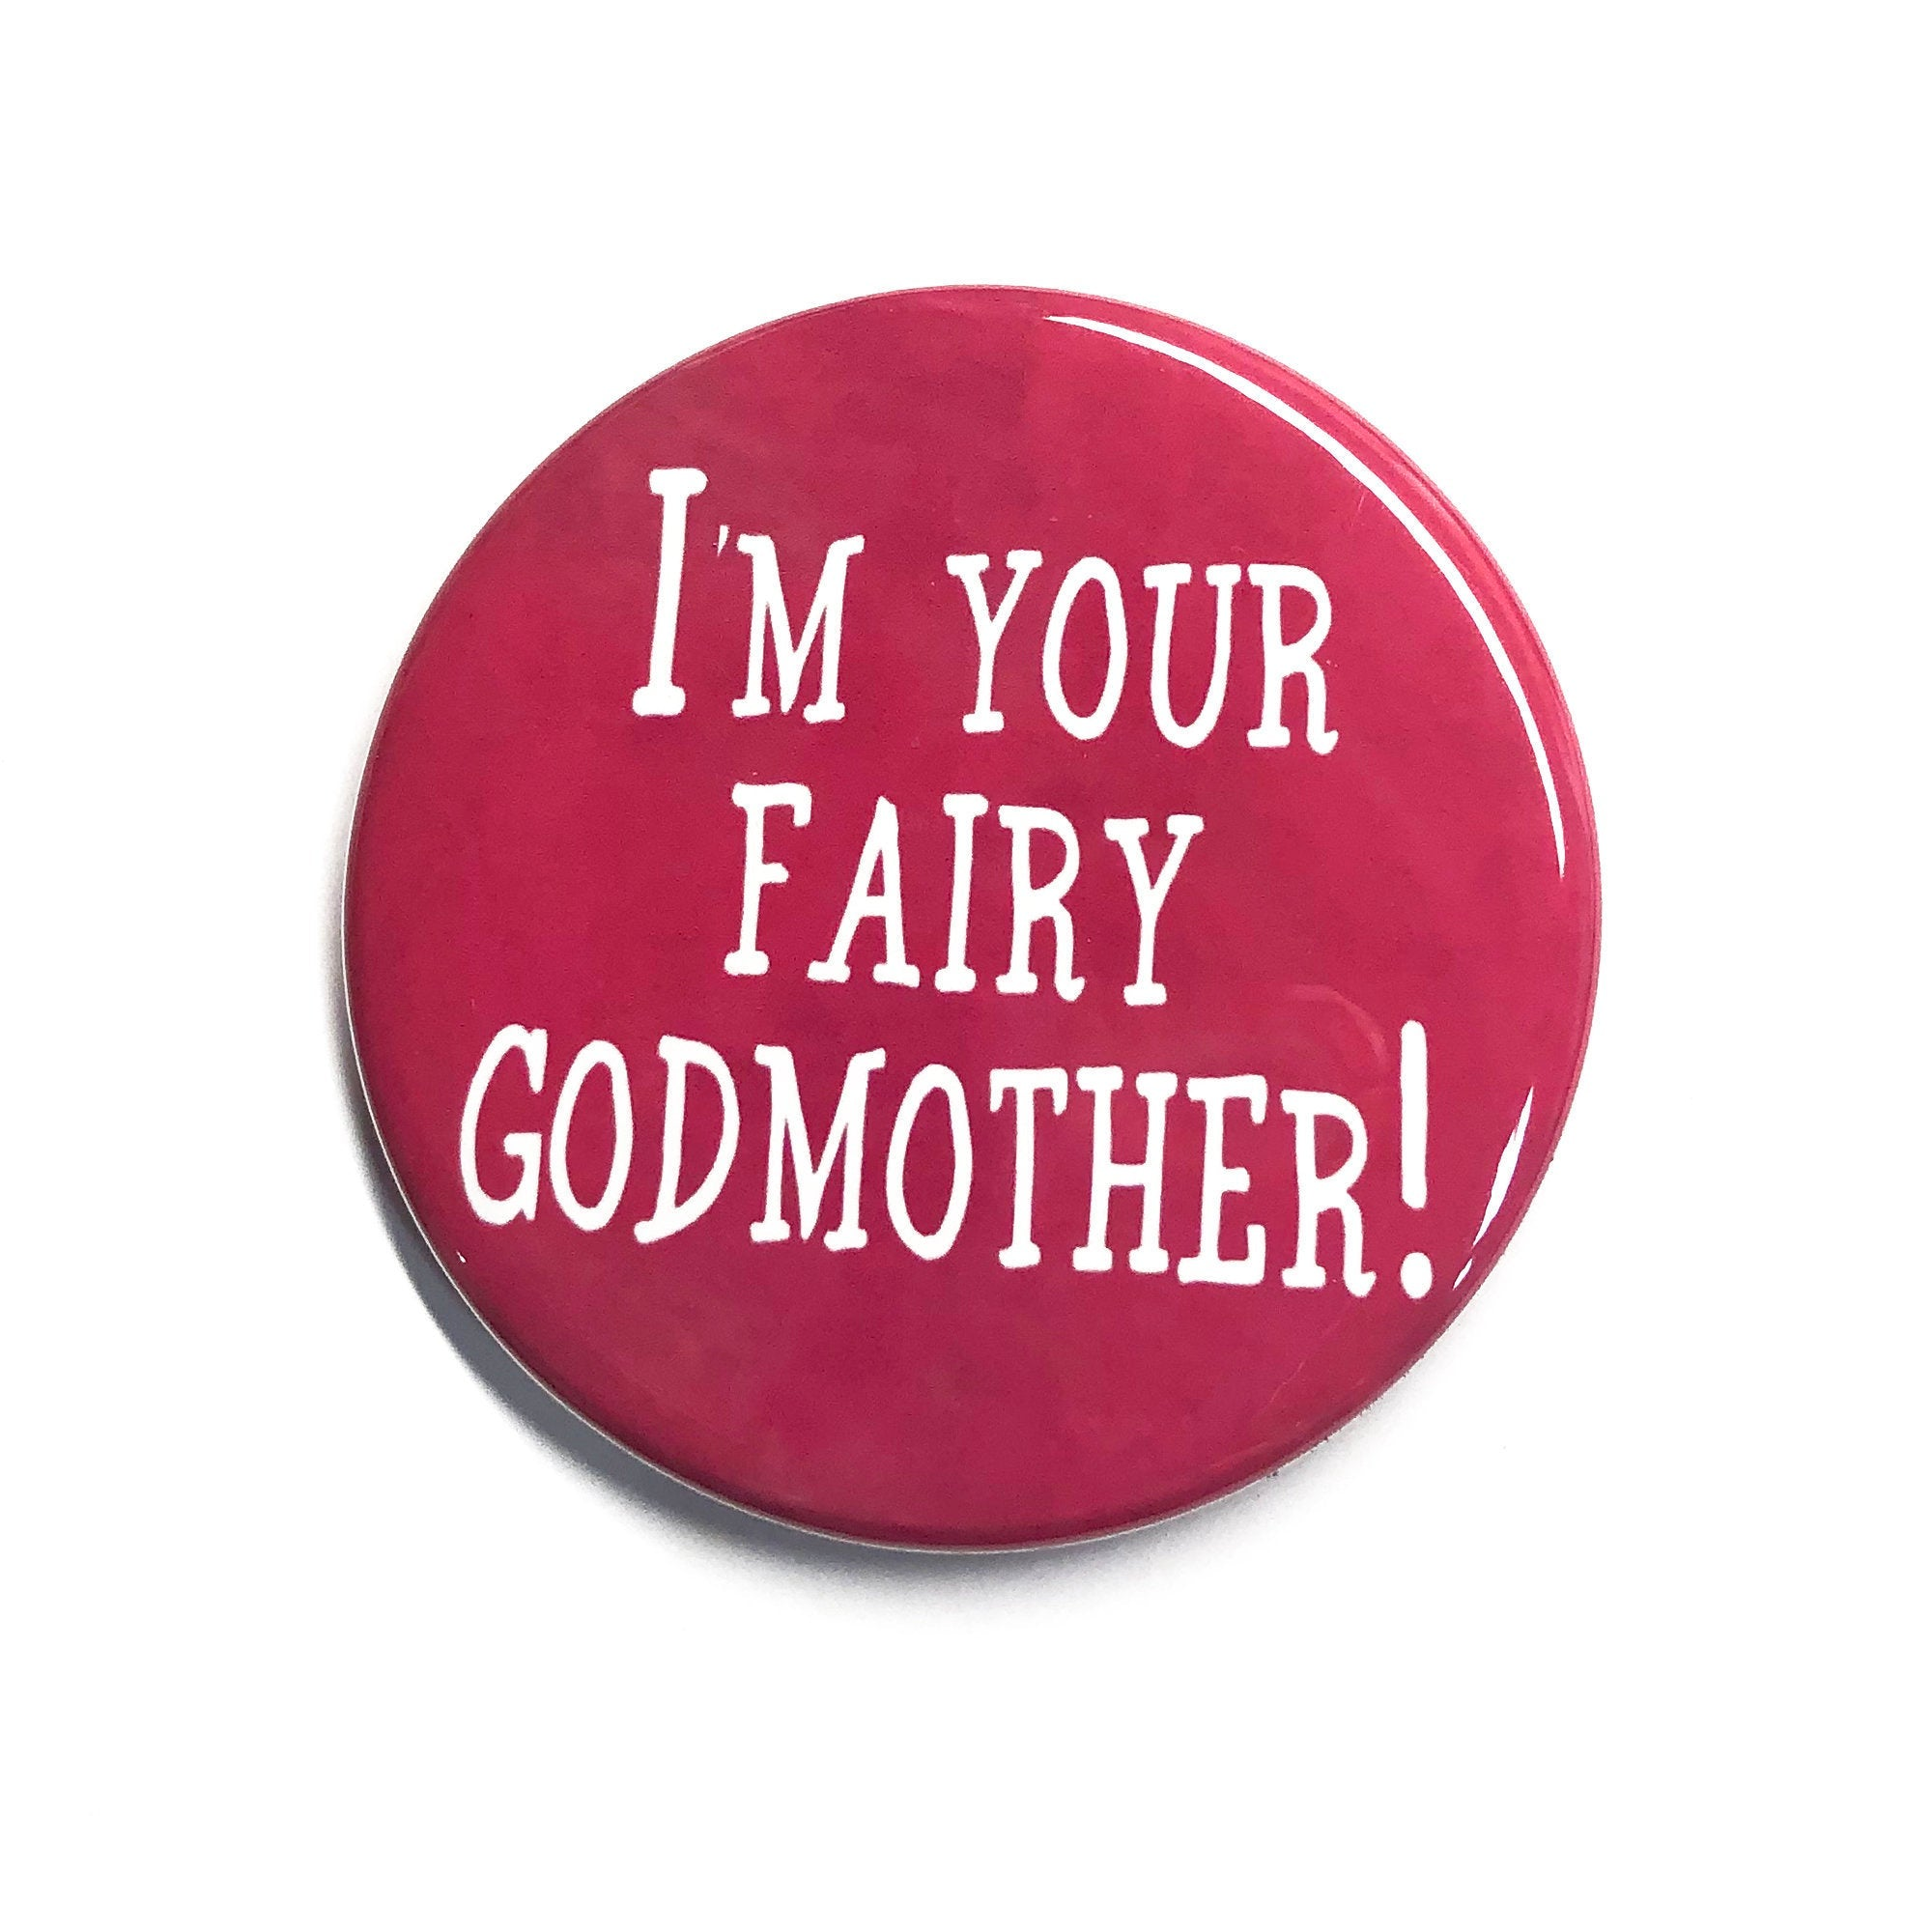 I'm Your Fairy Godmother Pin, Magnet or Pocket Mirror